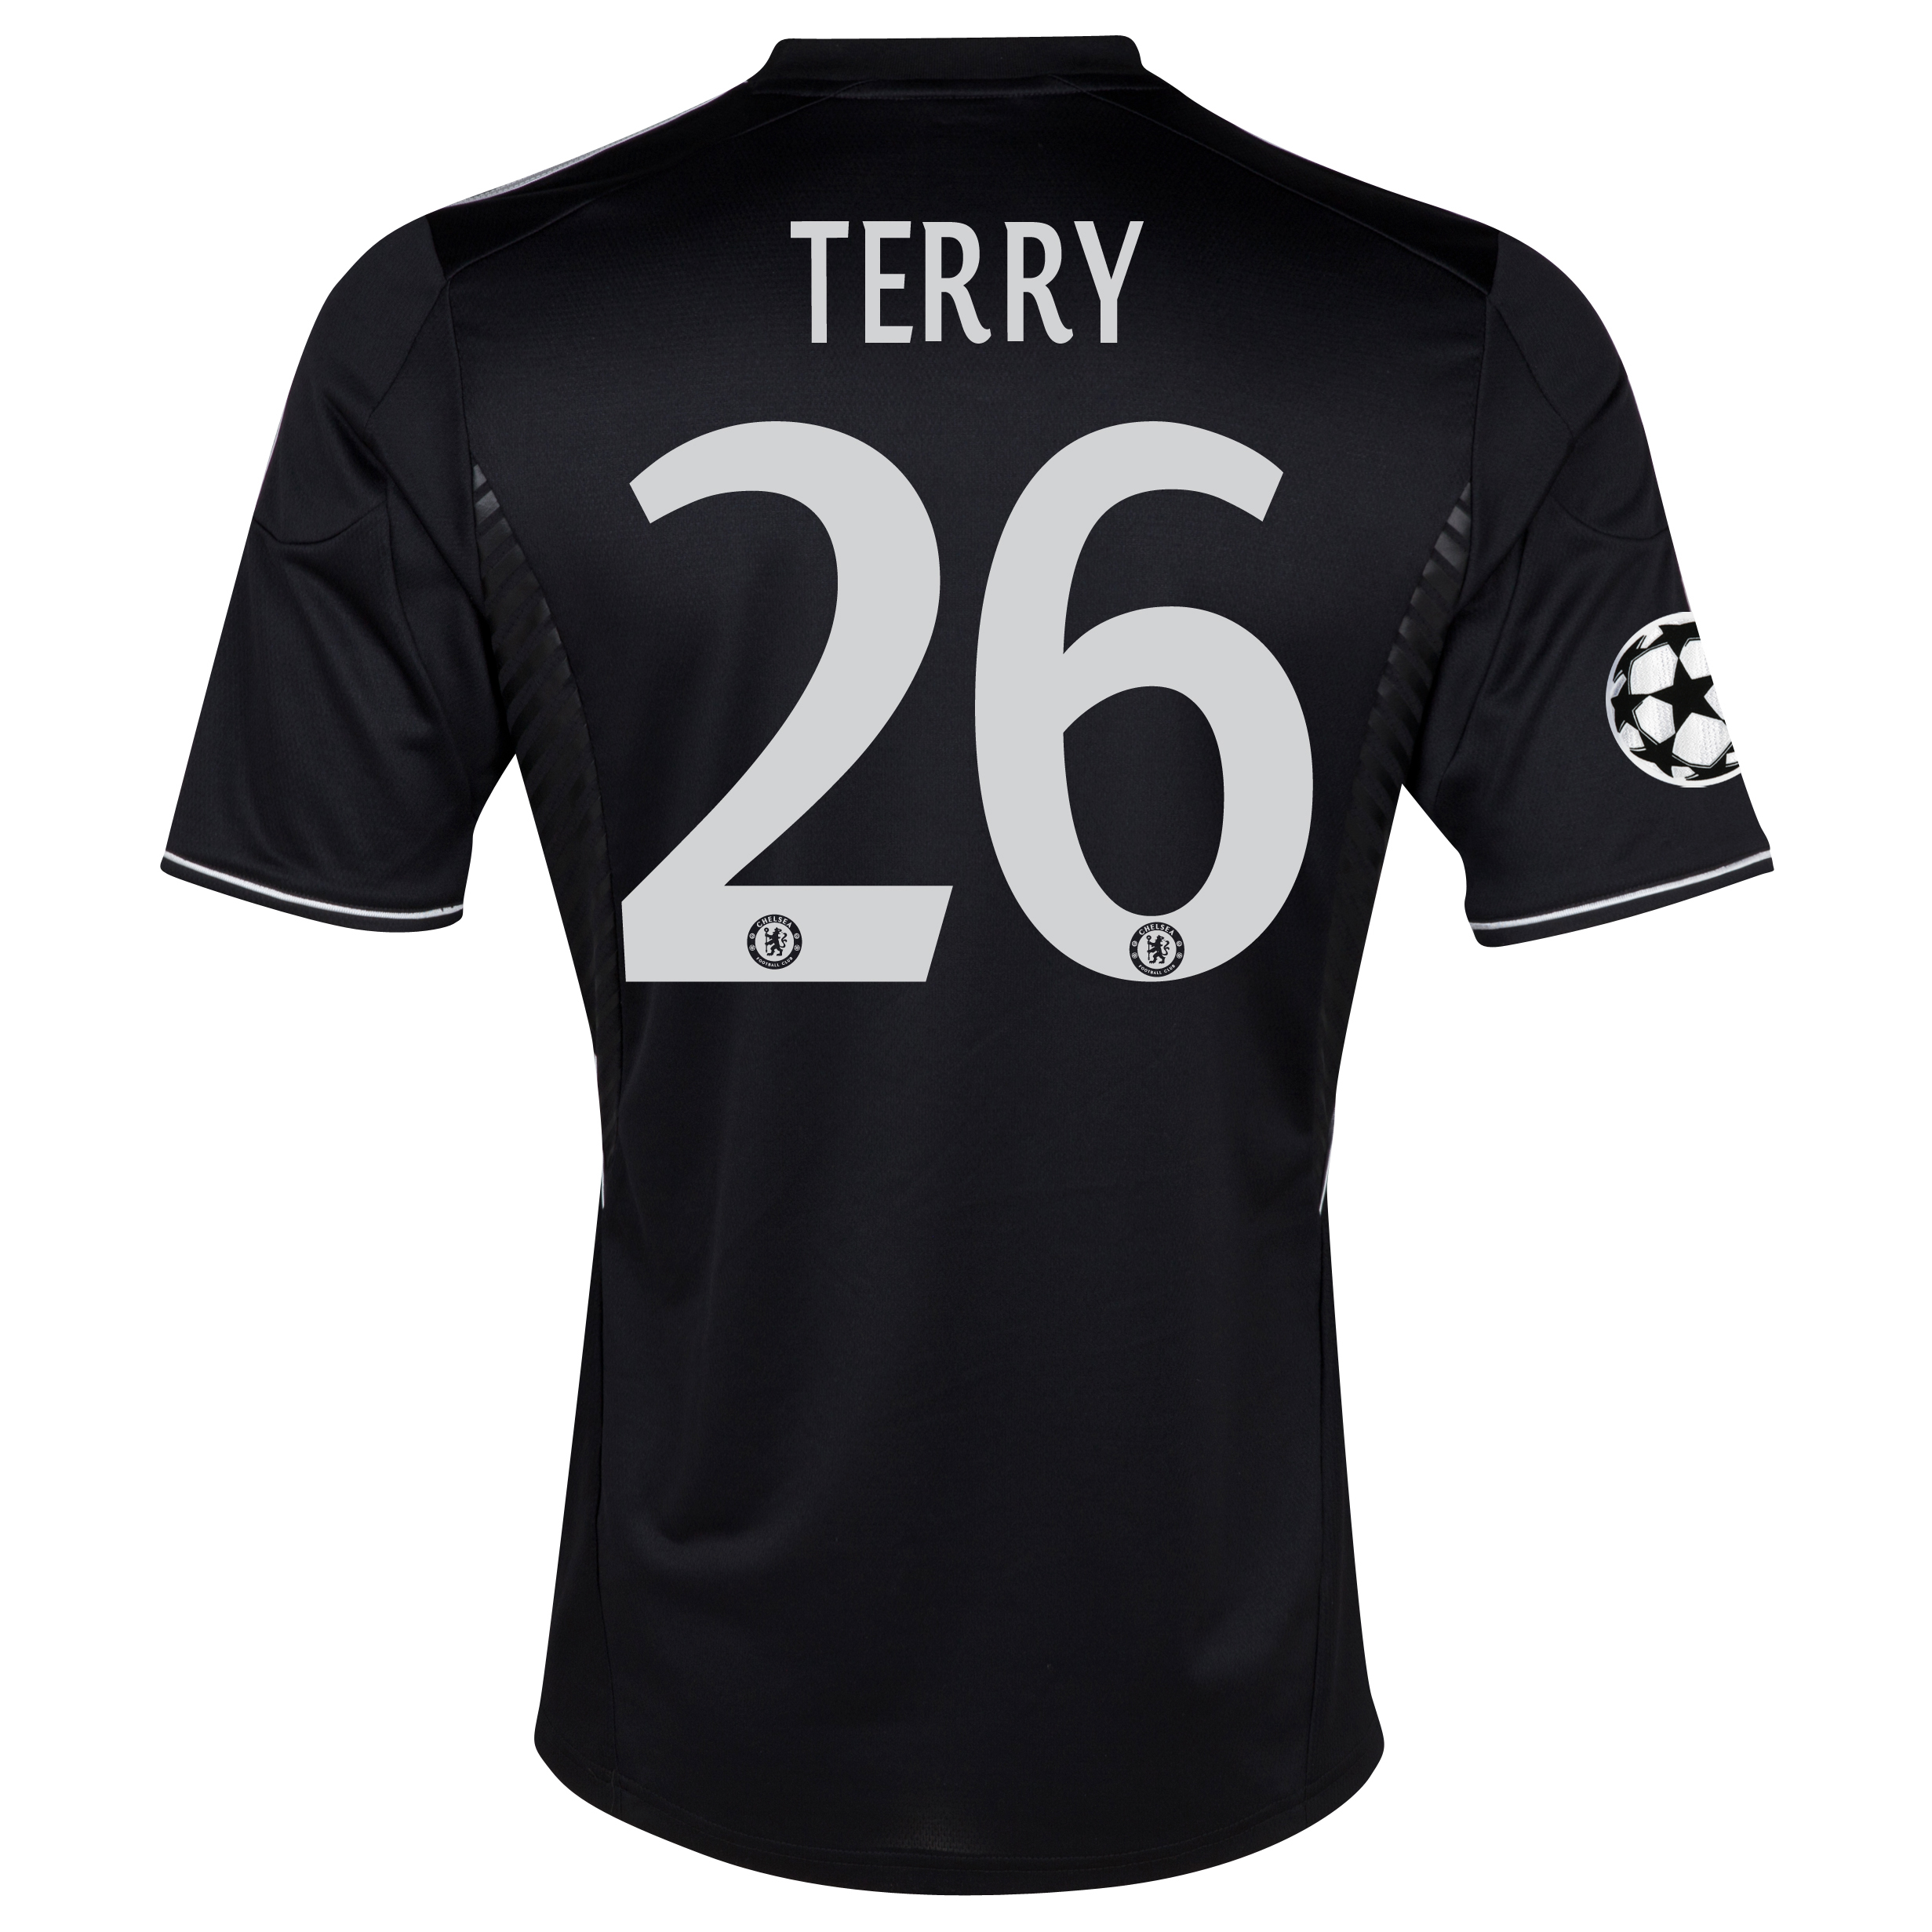 Chelsea UEFA Champions League Third Shirt 2013/14 with Terry 26 printing